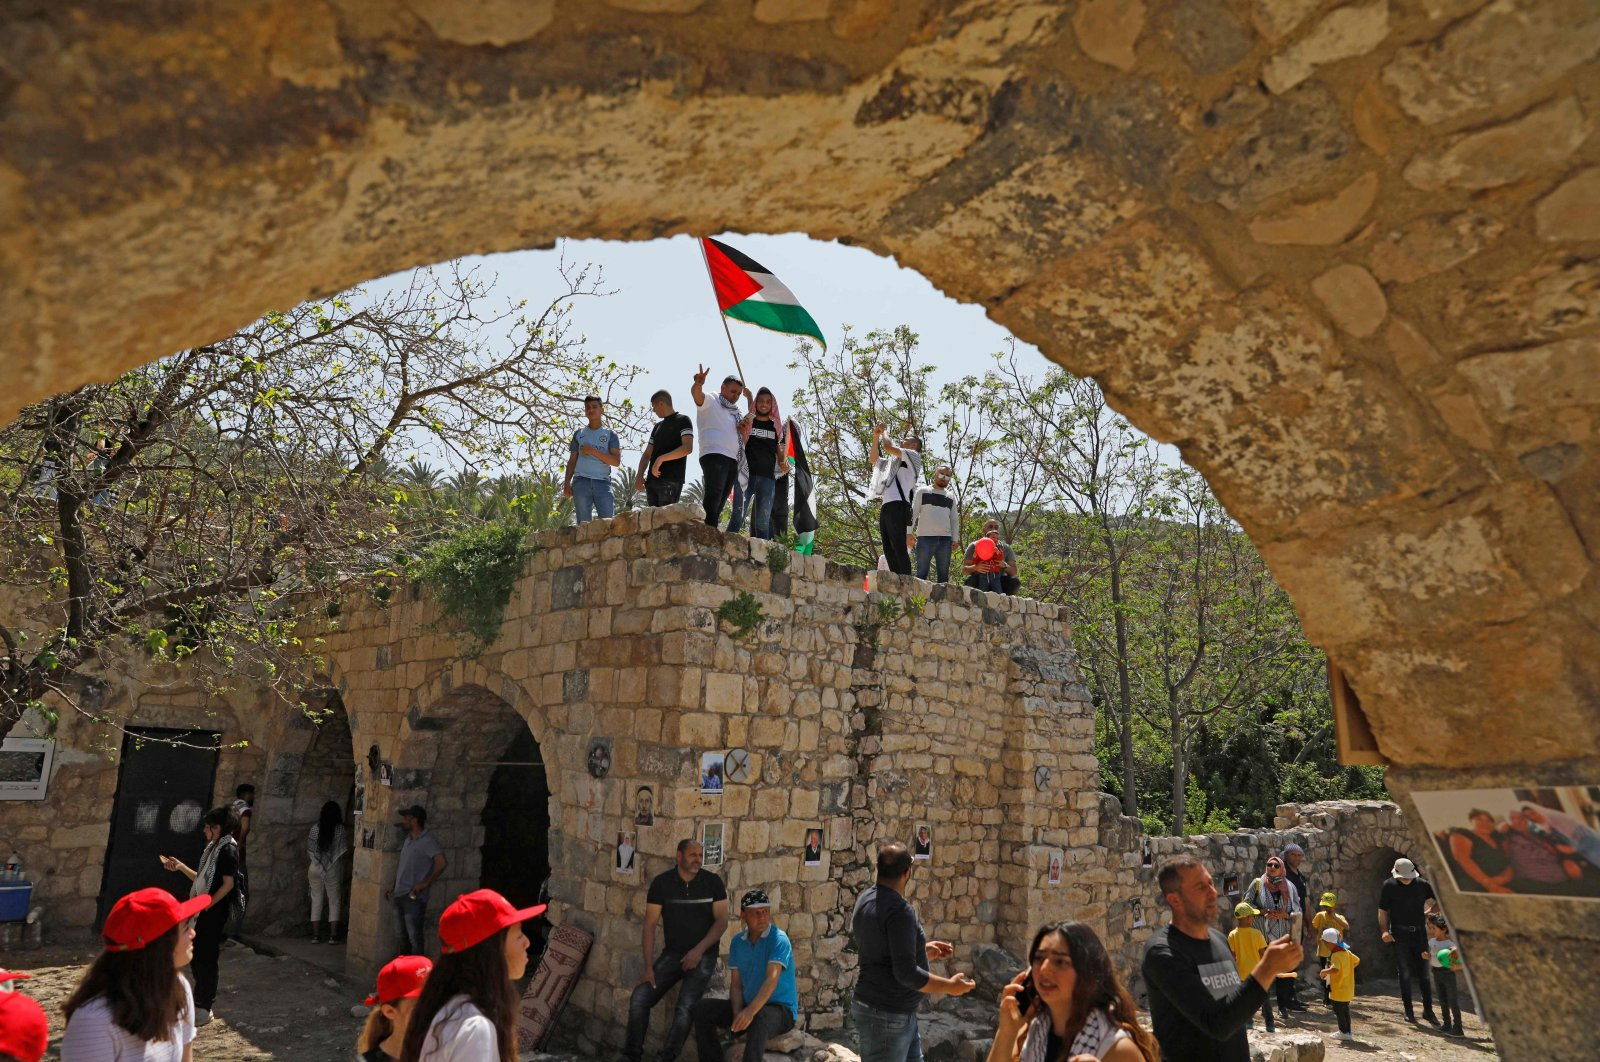 As Israelis mark Independence Day, celebrating the 73th year since the founding of the Jewish State, Arab Israelis wave Palestinian flags in the abandoned Arab village of Kfar Hattin to call for the right of return for Palestinian refugees who fled their homes or were expelled during the 1948 war that followed the creation of Israel, near Tiberias, northern Israel, April 15, 2021. (AFP Photo)